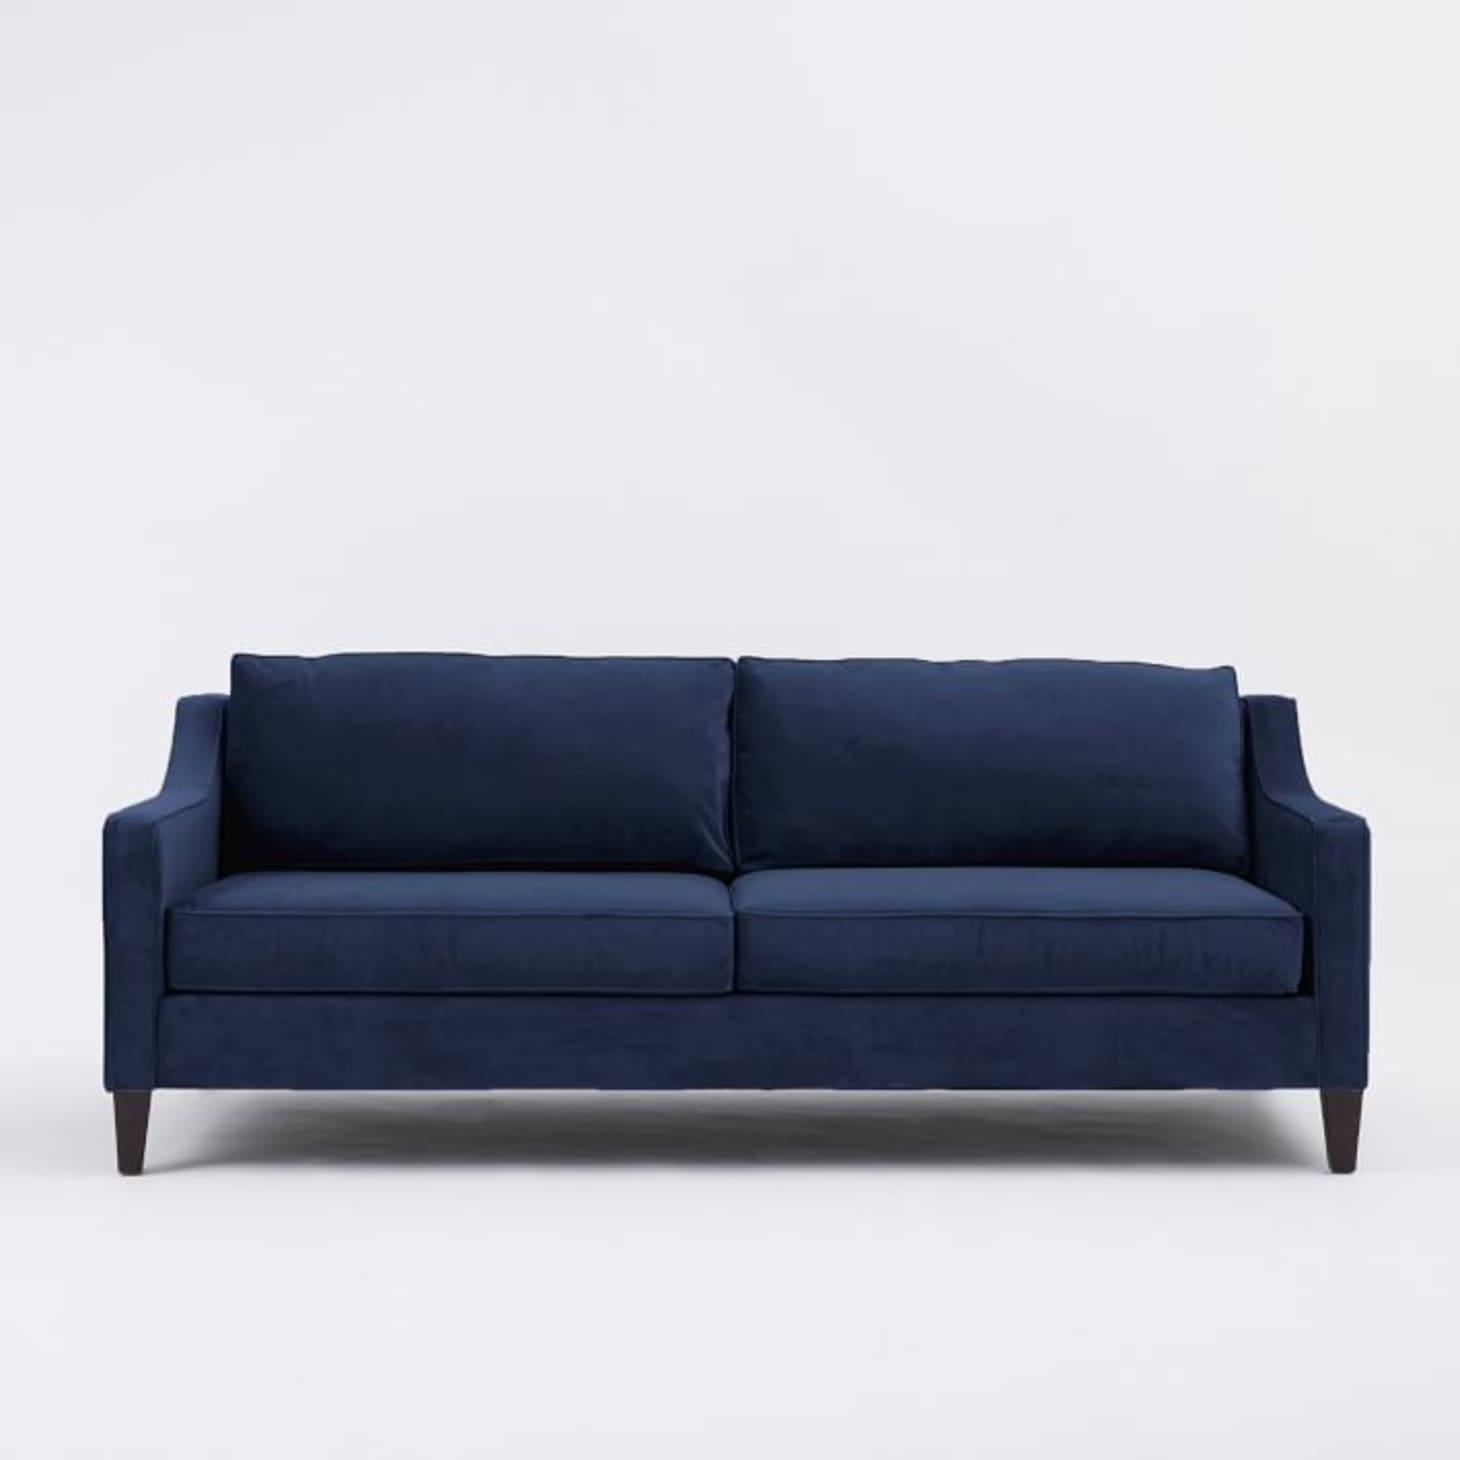 Tremendous The Most Comfortable Sofas At West Elm Tested Reviewed Pdpeps Interior Chair Design Pdpepsorg